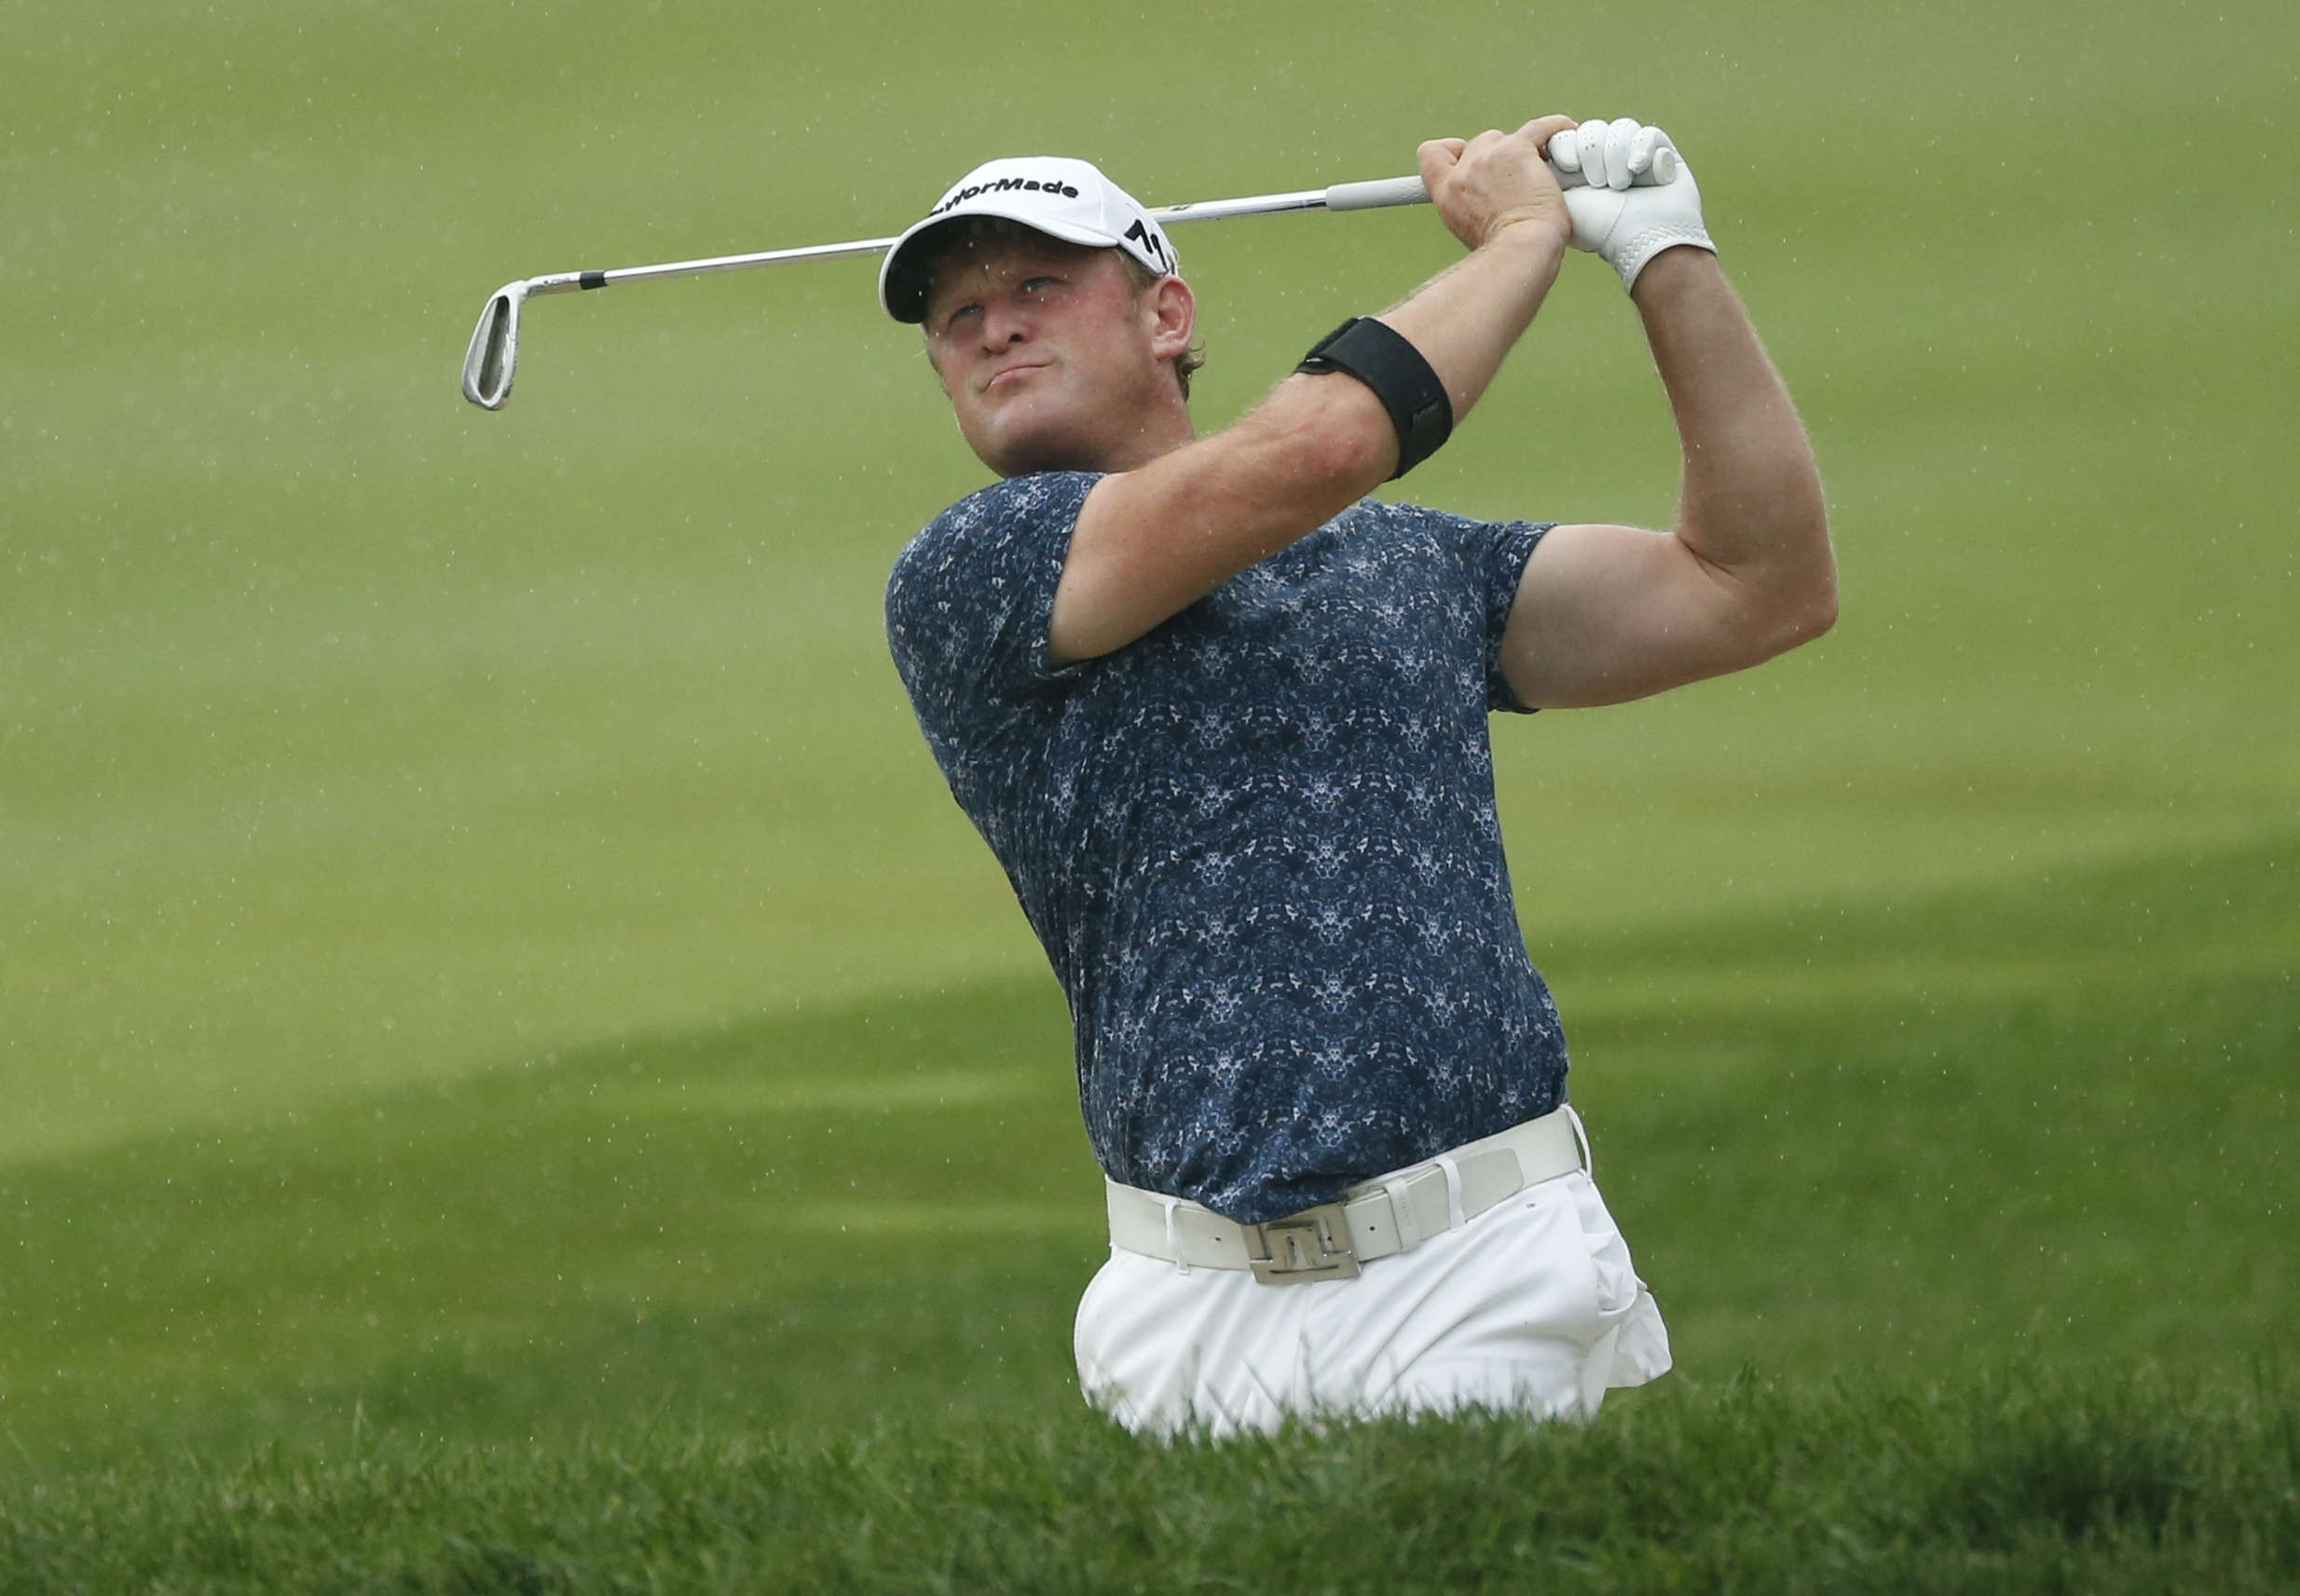 Jamie Donaldson watches his chip shot to the first green during the final round of the PGA Championship golf tournament at Baltusrol Golf Club in Springfield, N.J., Sunday, July 31, 2016. (AP Photo/Mike Groll)